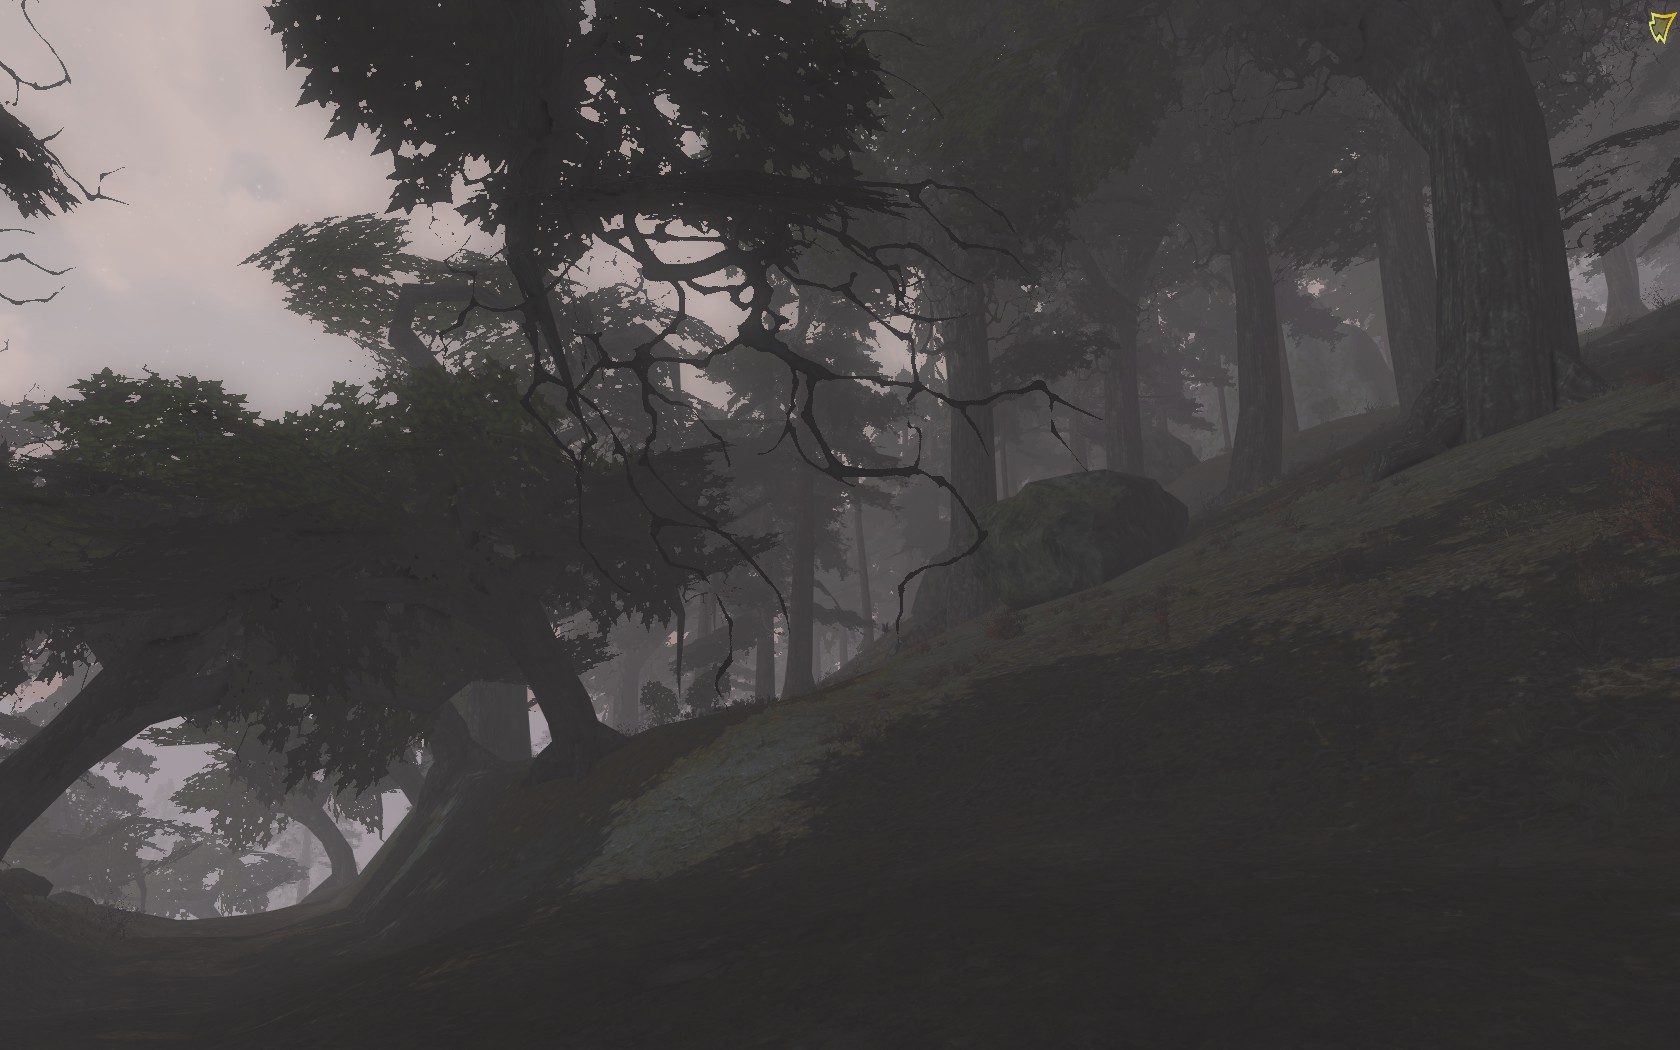 Lord of the Rings Online - A cloudy morning in Mirkwood